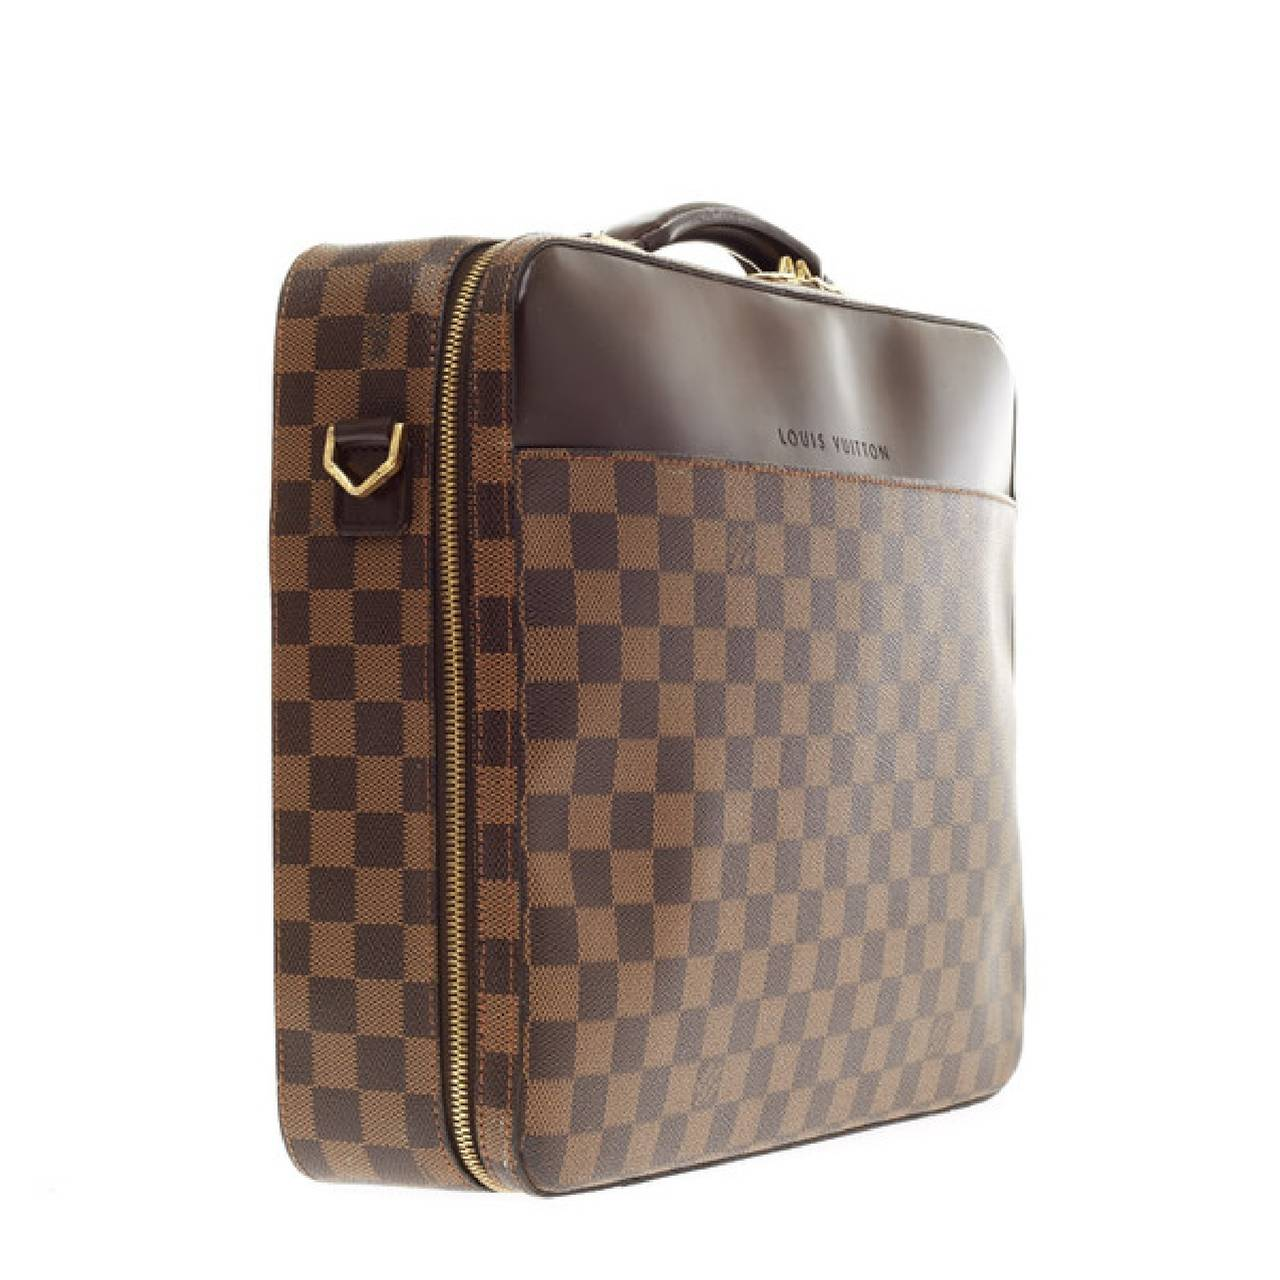 Louis Vuitton Sabana Laptop Bag Damier In Good Condition For New York Ny